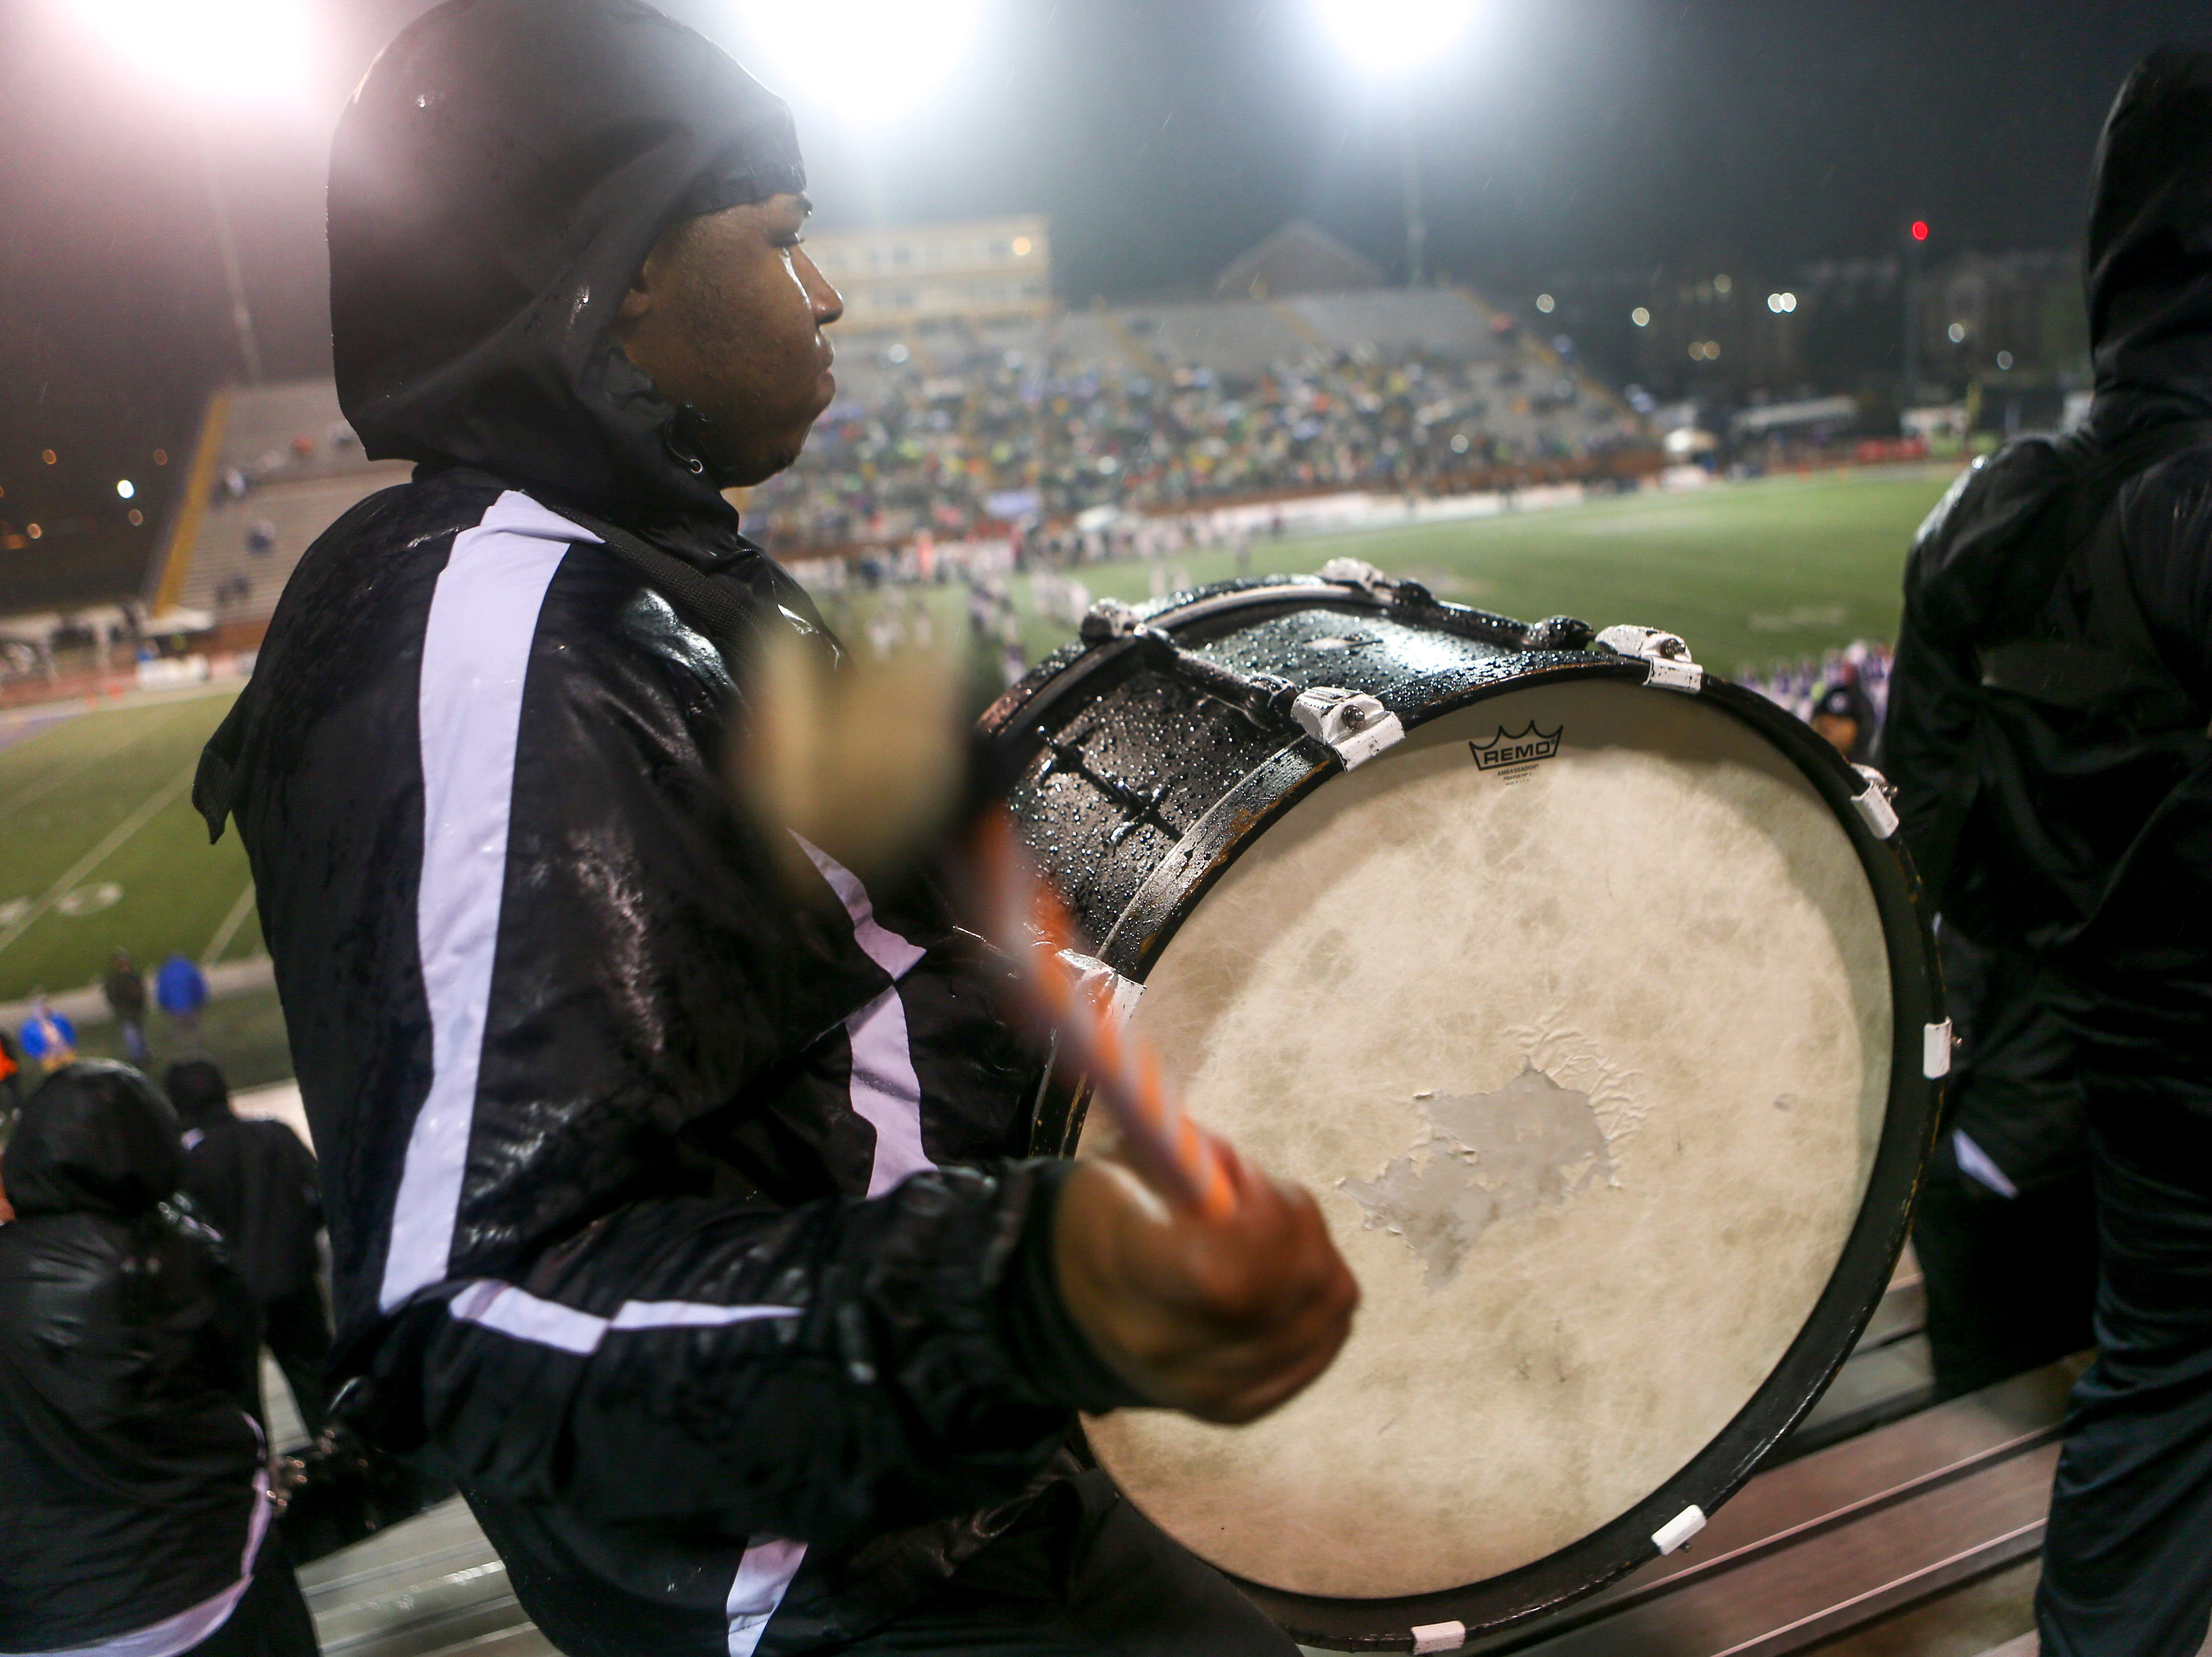 Tereon Taylor pays on his bass drum for a cadence during the Class 4A Blue Cross Bowl between Haywood and Greeneville at Tennessee Tech's Tucker Stadium in Cookeville, Tenn., on Thursday, Nov. 29, 2018.